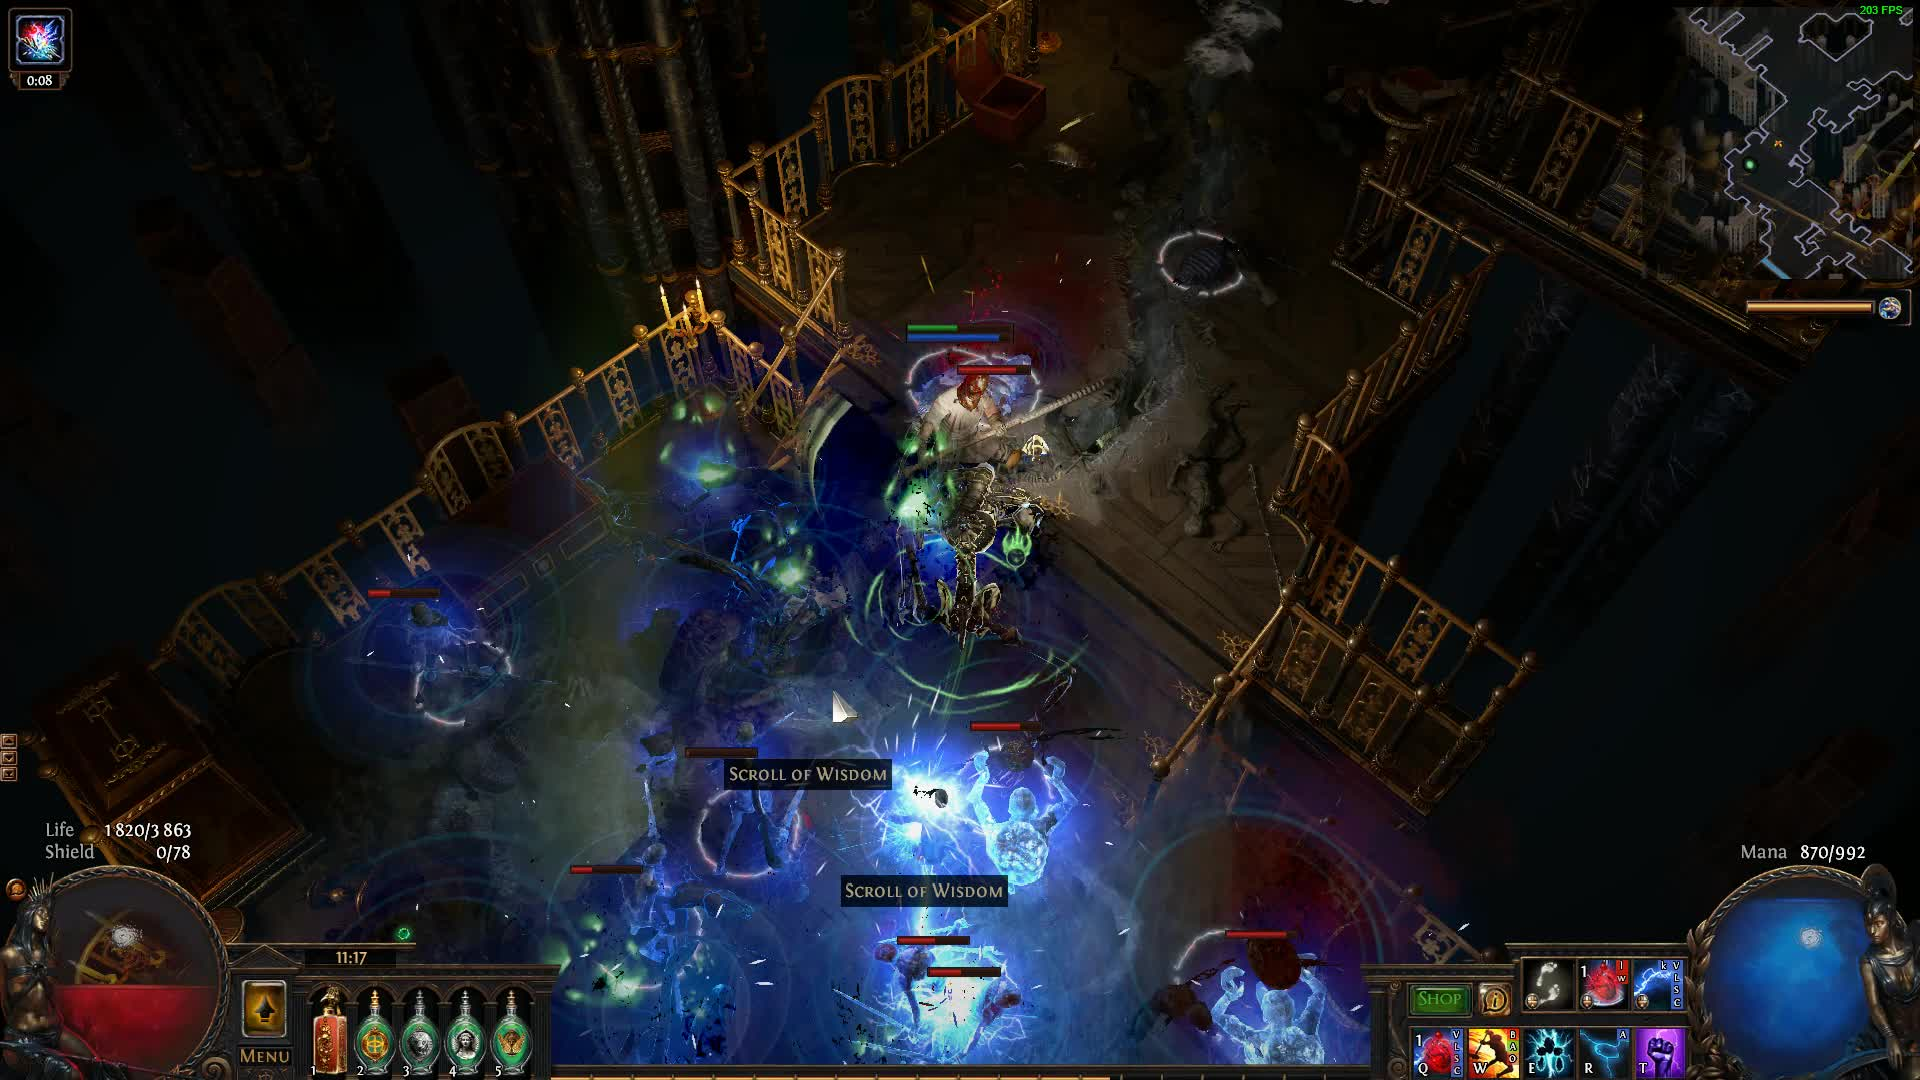 pathofexile, vlc-record-2019-02-09-11h20m48s-Path Of Exile 2019.02.09 - 11.17.40.03.DVR.mp4- GIFs